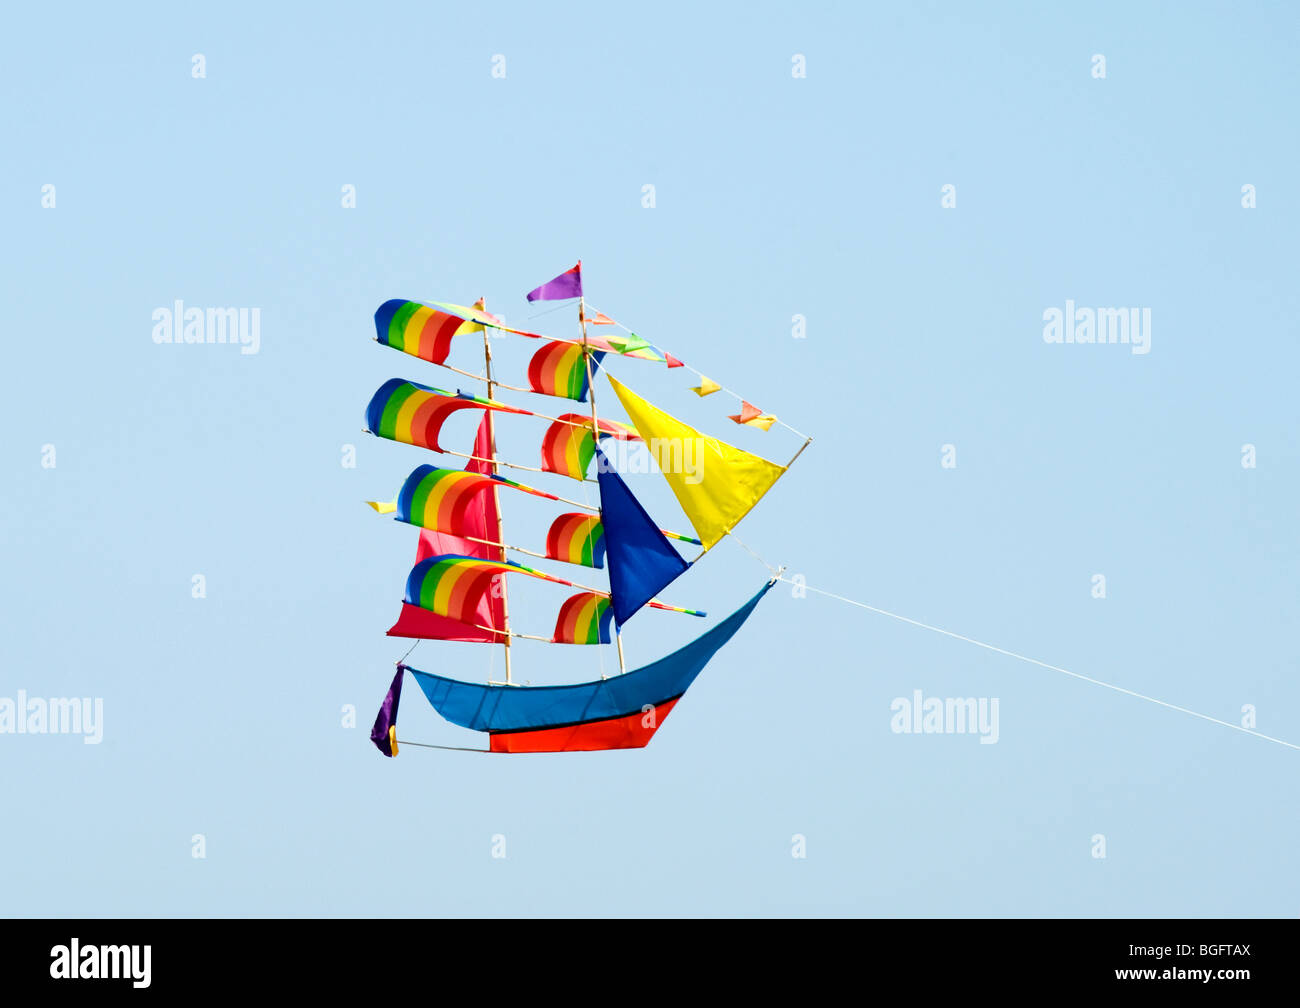 Boat shaped Kite flying against a light blue sky - Stock Image